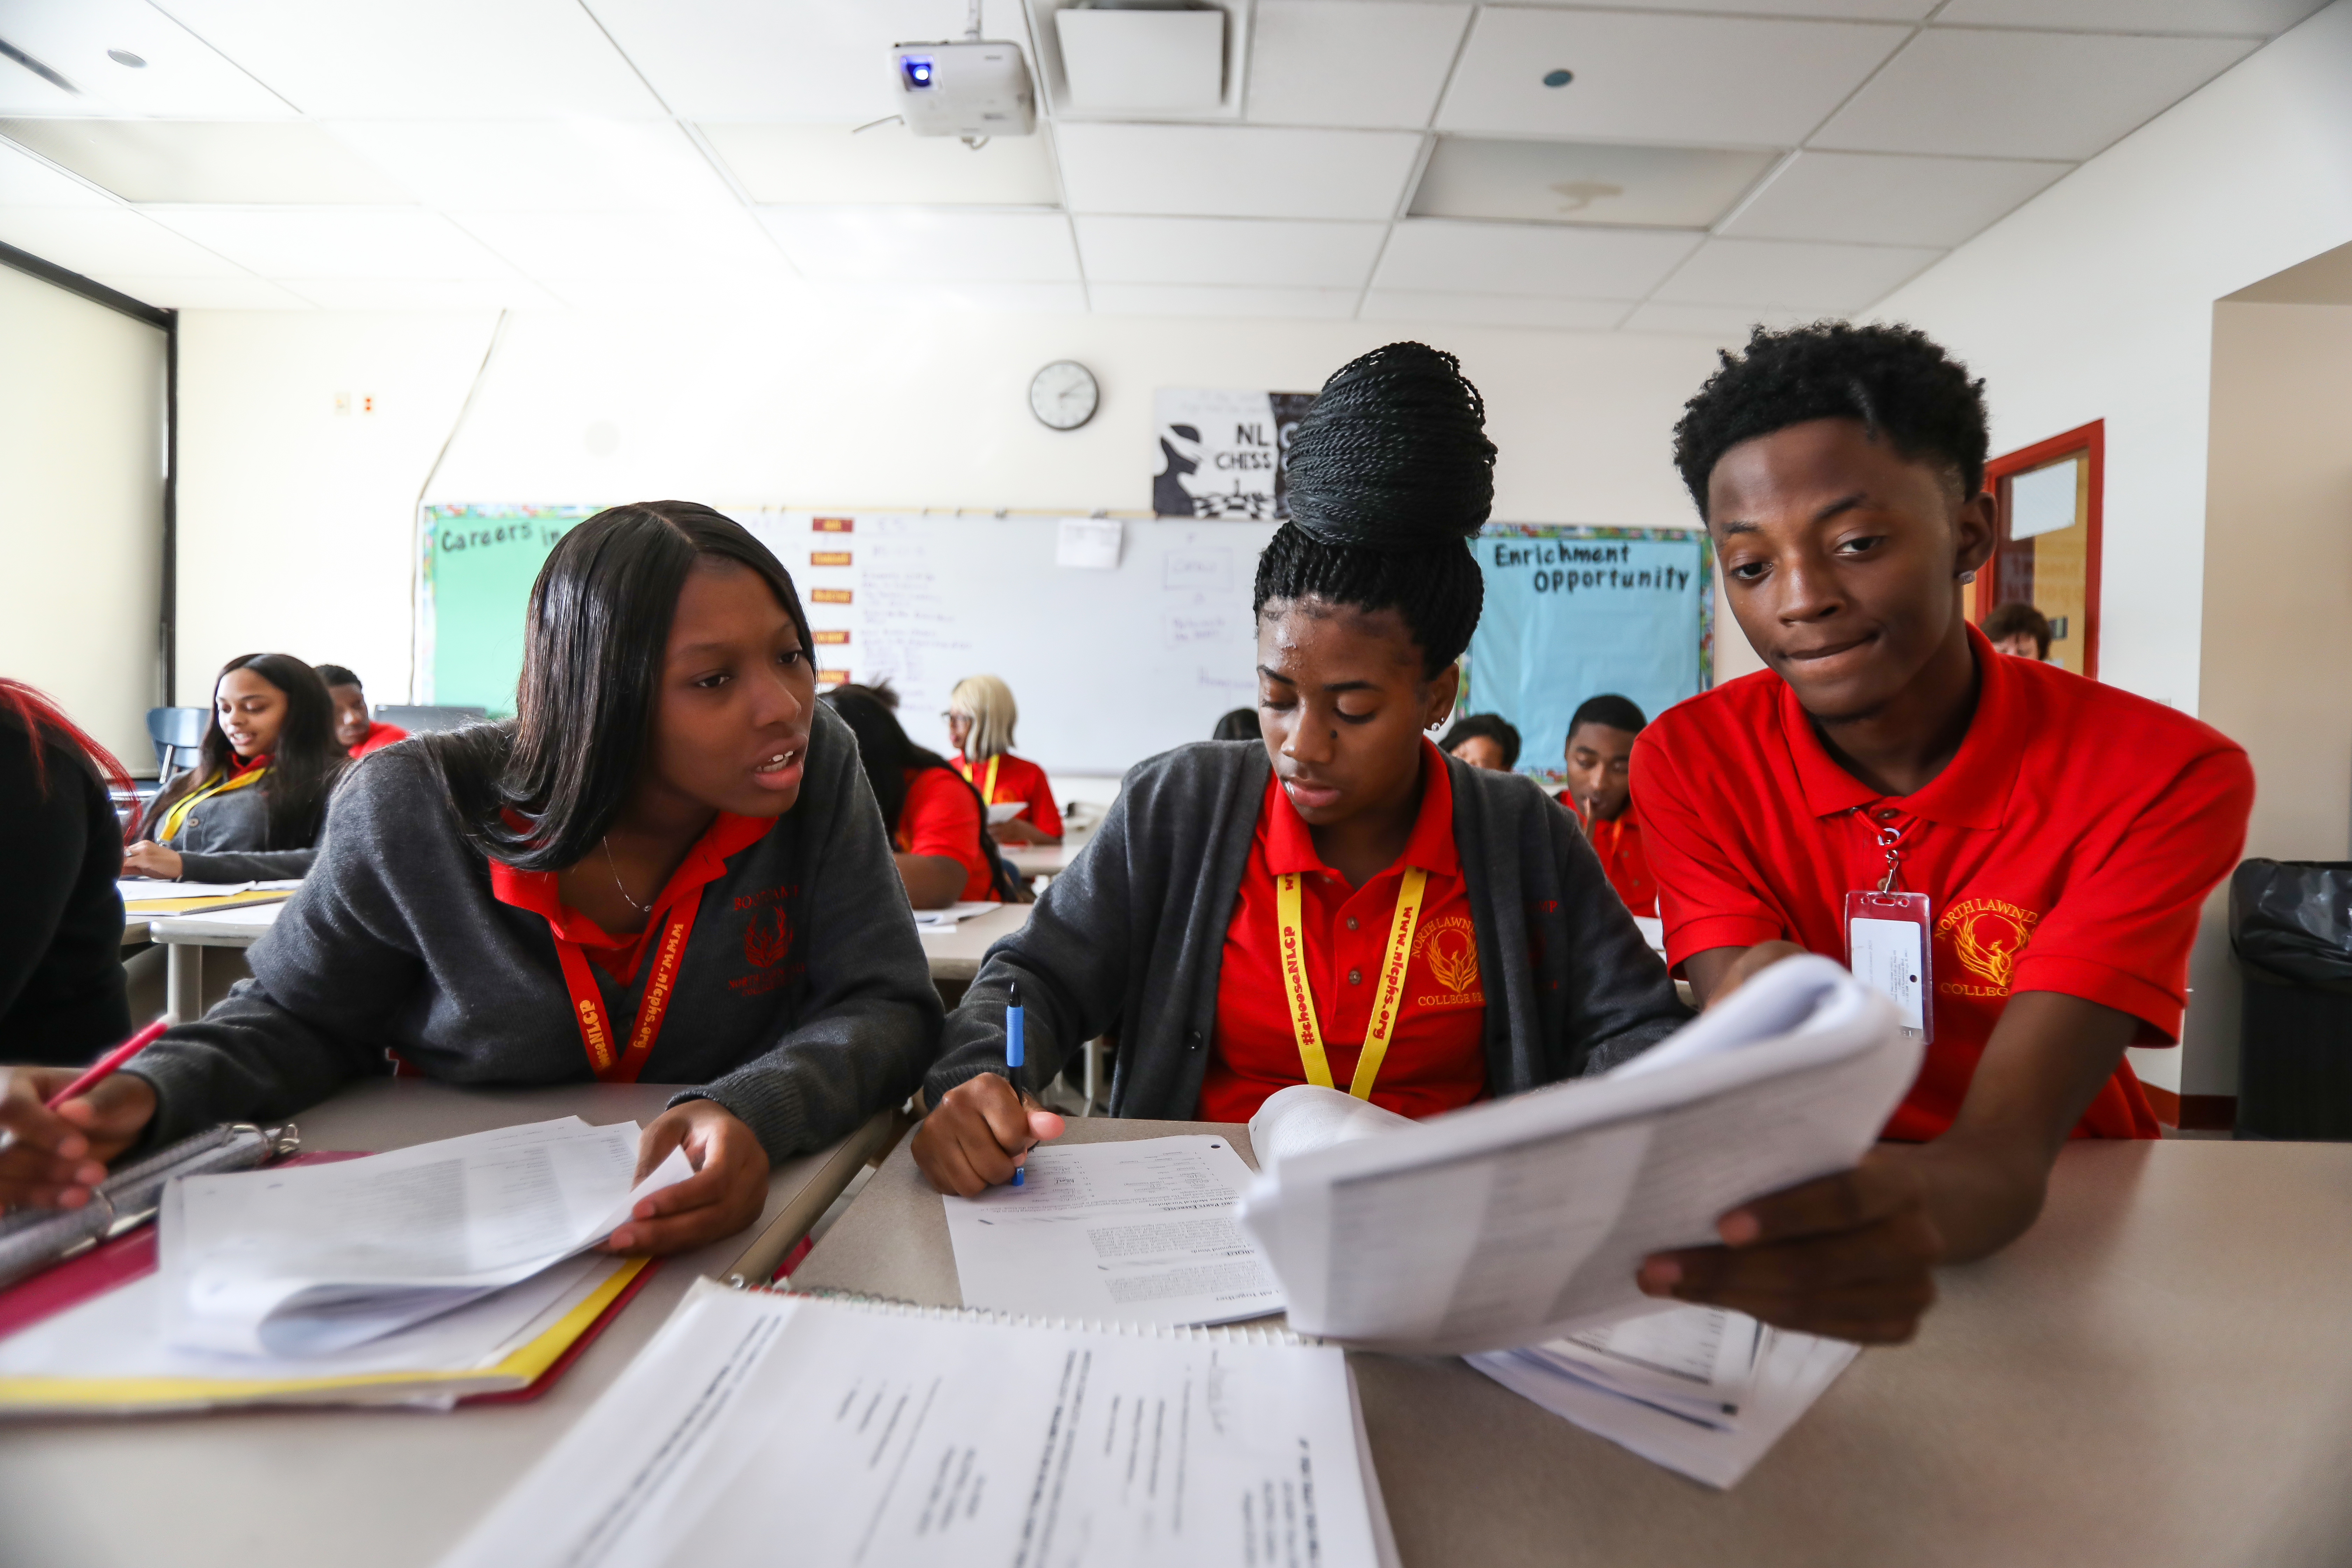 The teacher of this college-level class at North Lawndale College Prep says few students fail his class because he offers lots of supports, like tutoring and help during lunch time.